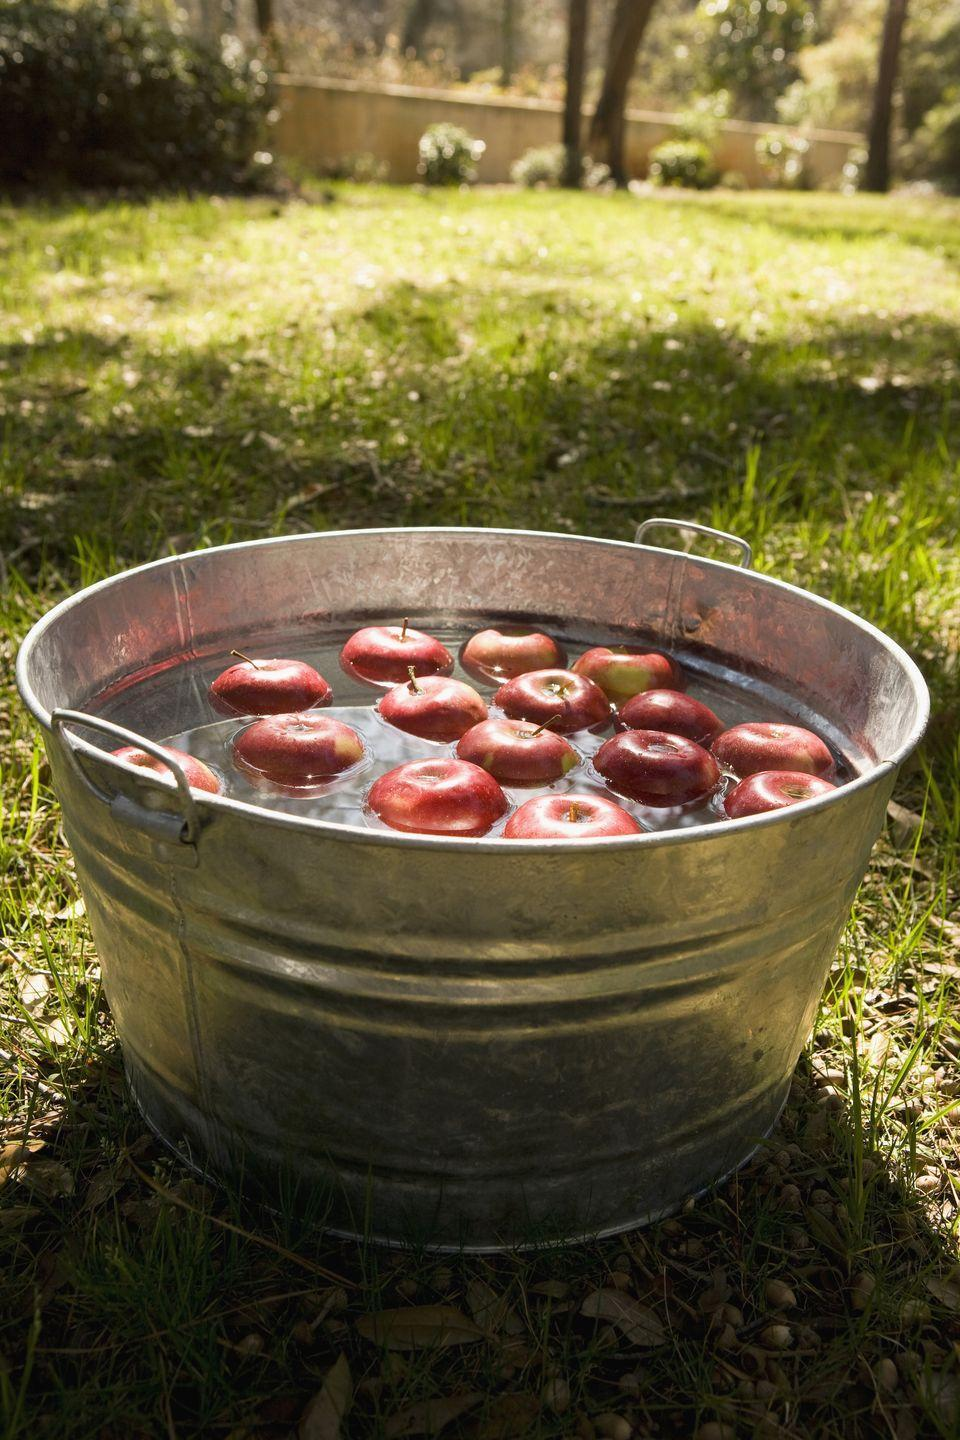 "<p>Bobbing for apples has been a longtime Halloween tradition. All you need is a clean tub, water, and—you guessed it—apples. (Bonus points if they are fresh from an apple-picking excursion!)</p><p><a class=""link rapid-noclick-resp"" href=""https://www.amazon.com/Behrens-15-Gallon-Round-Steel-Tub/dp/B0014CR8EE/?tag=syn-yahoo-20&ascsubtag=%5Bartid%7C2139.g.34440360%5Bsrc%7Cyahoo-us"" rel=""nofollow noopener"" target=""_blank"" data-ylk=""slk:SHOP TUBS"">SHOP TUBS</a></p>"